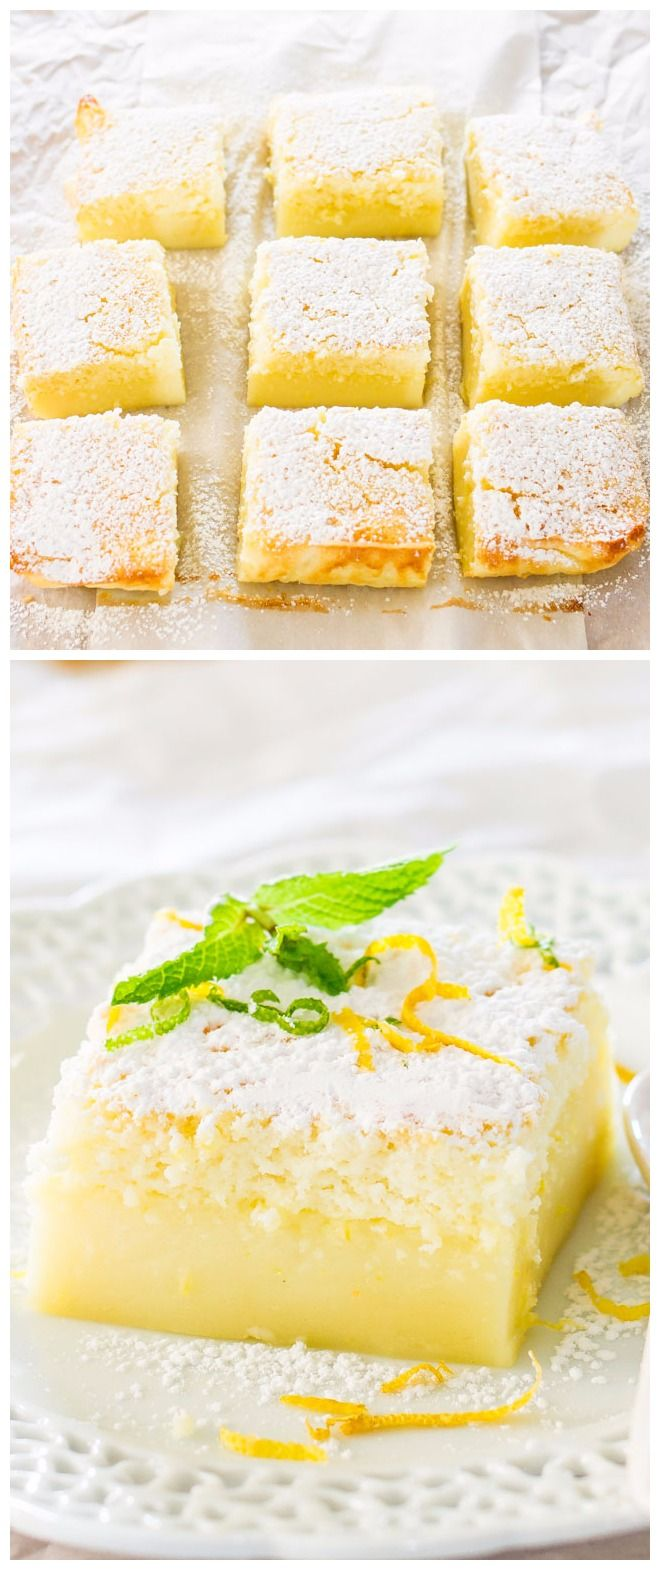 Lemon Magic Cake Ingredients: 4 eggs (separate yolks from whites) at room temperature 1 tsp vanilla extract 150 g (3/4 cup) sugar 125 g (1 stick or ½ cup) butter, melted 115 g (4 oz or ¾ cup...